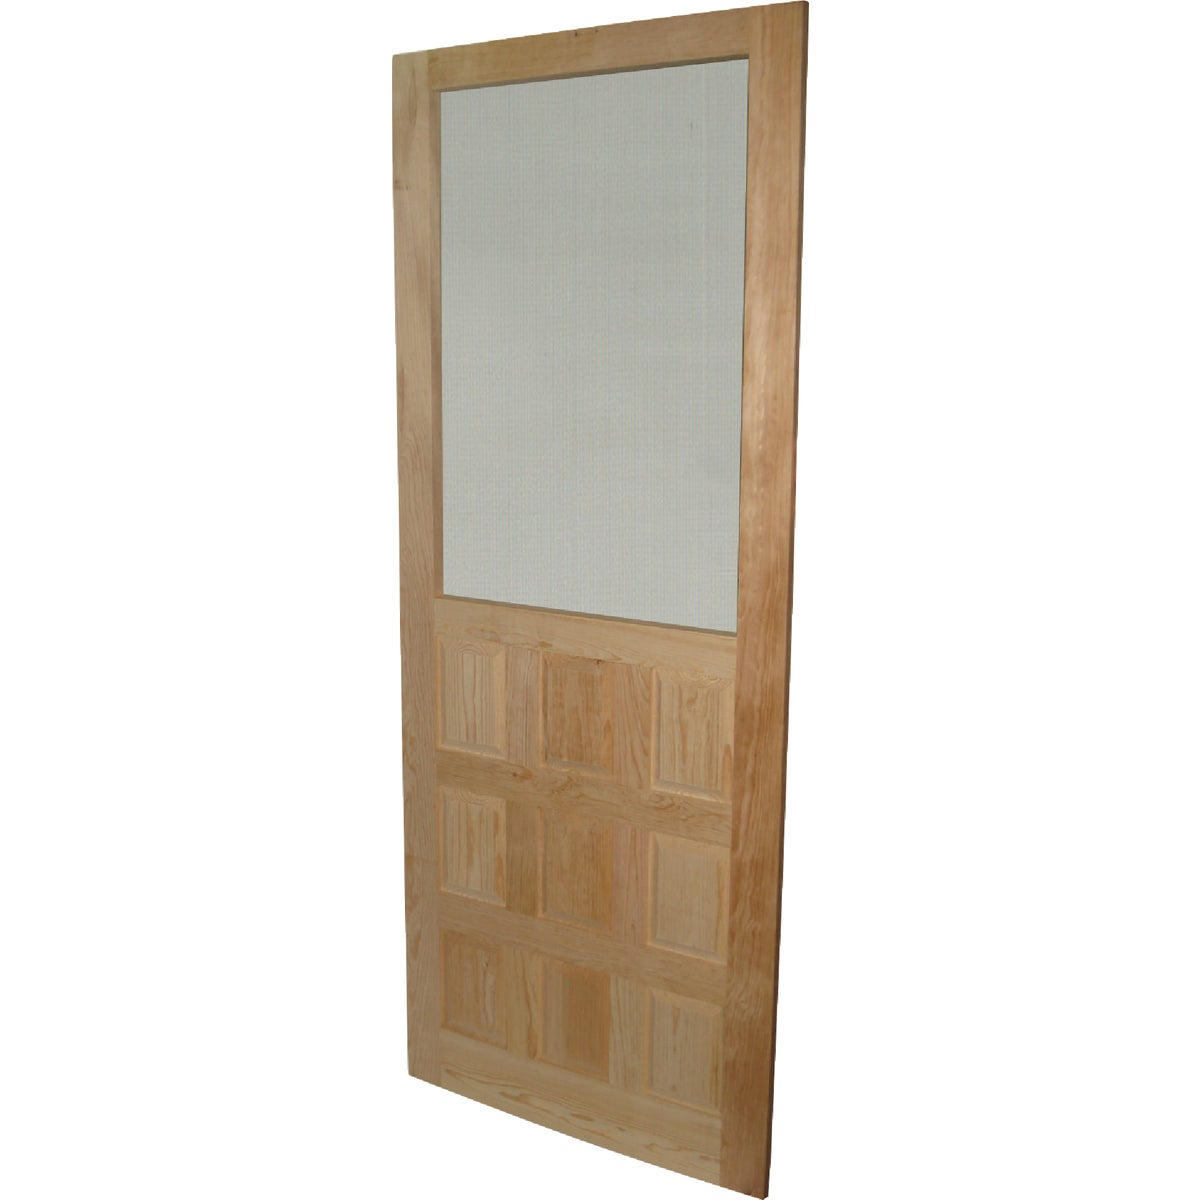 "32"" RP SCREEN DOOR - DSU932 by Snavely Internatl"